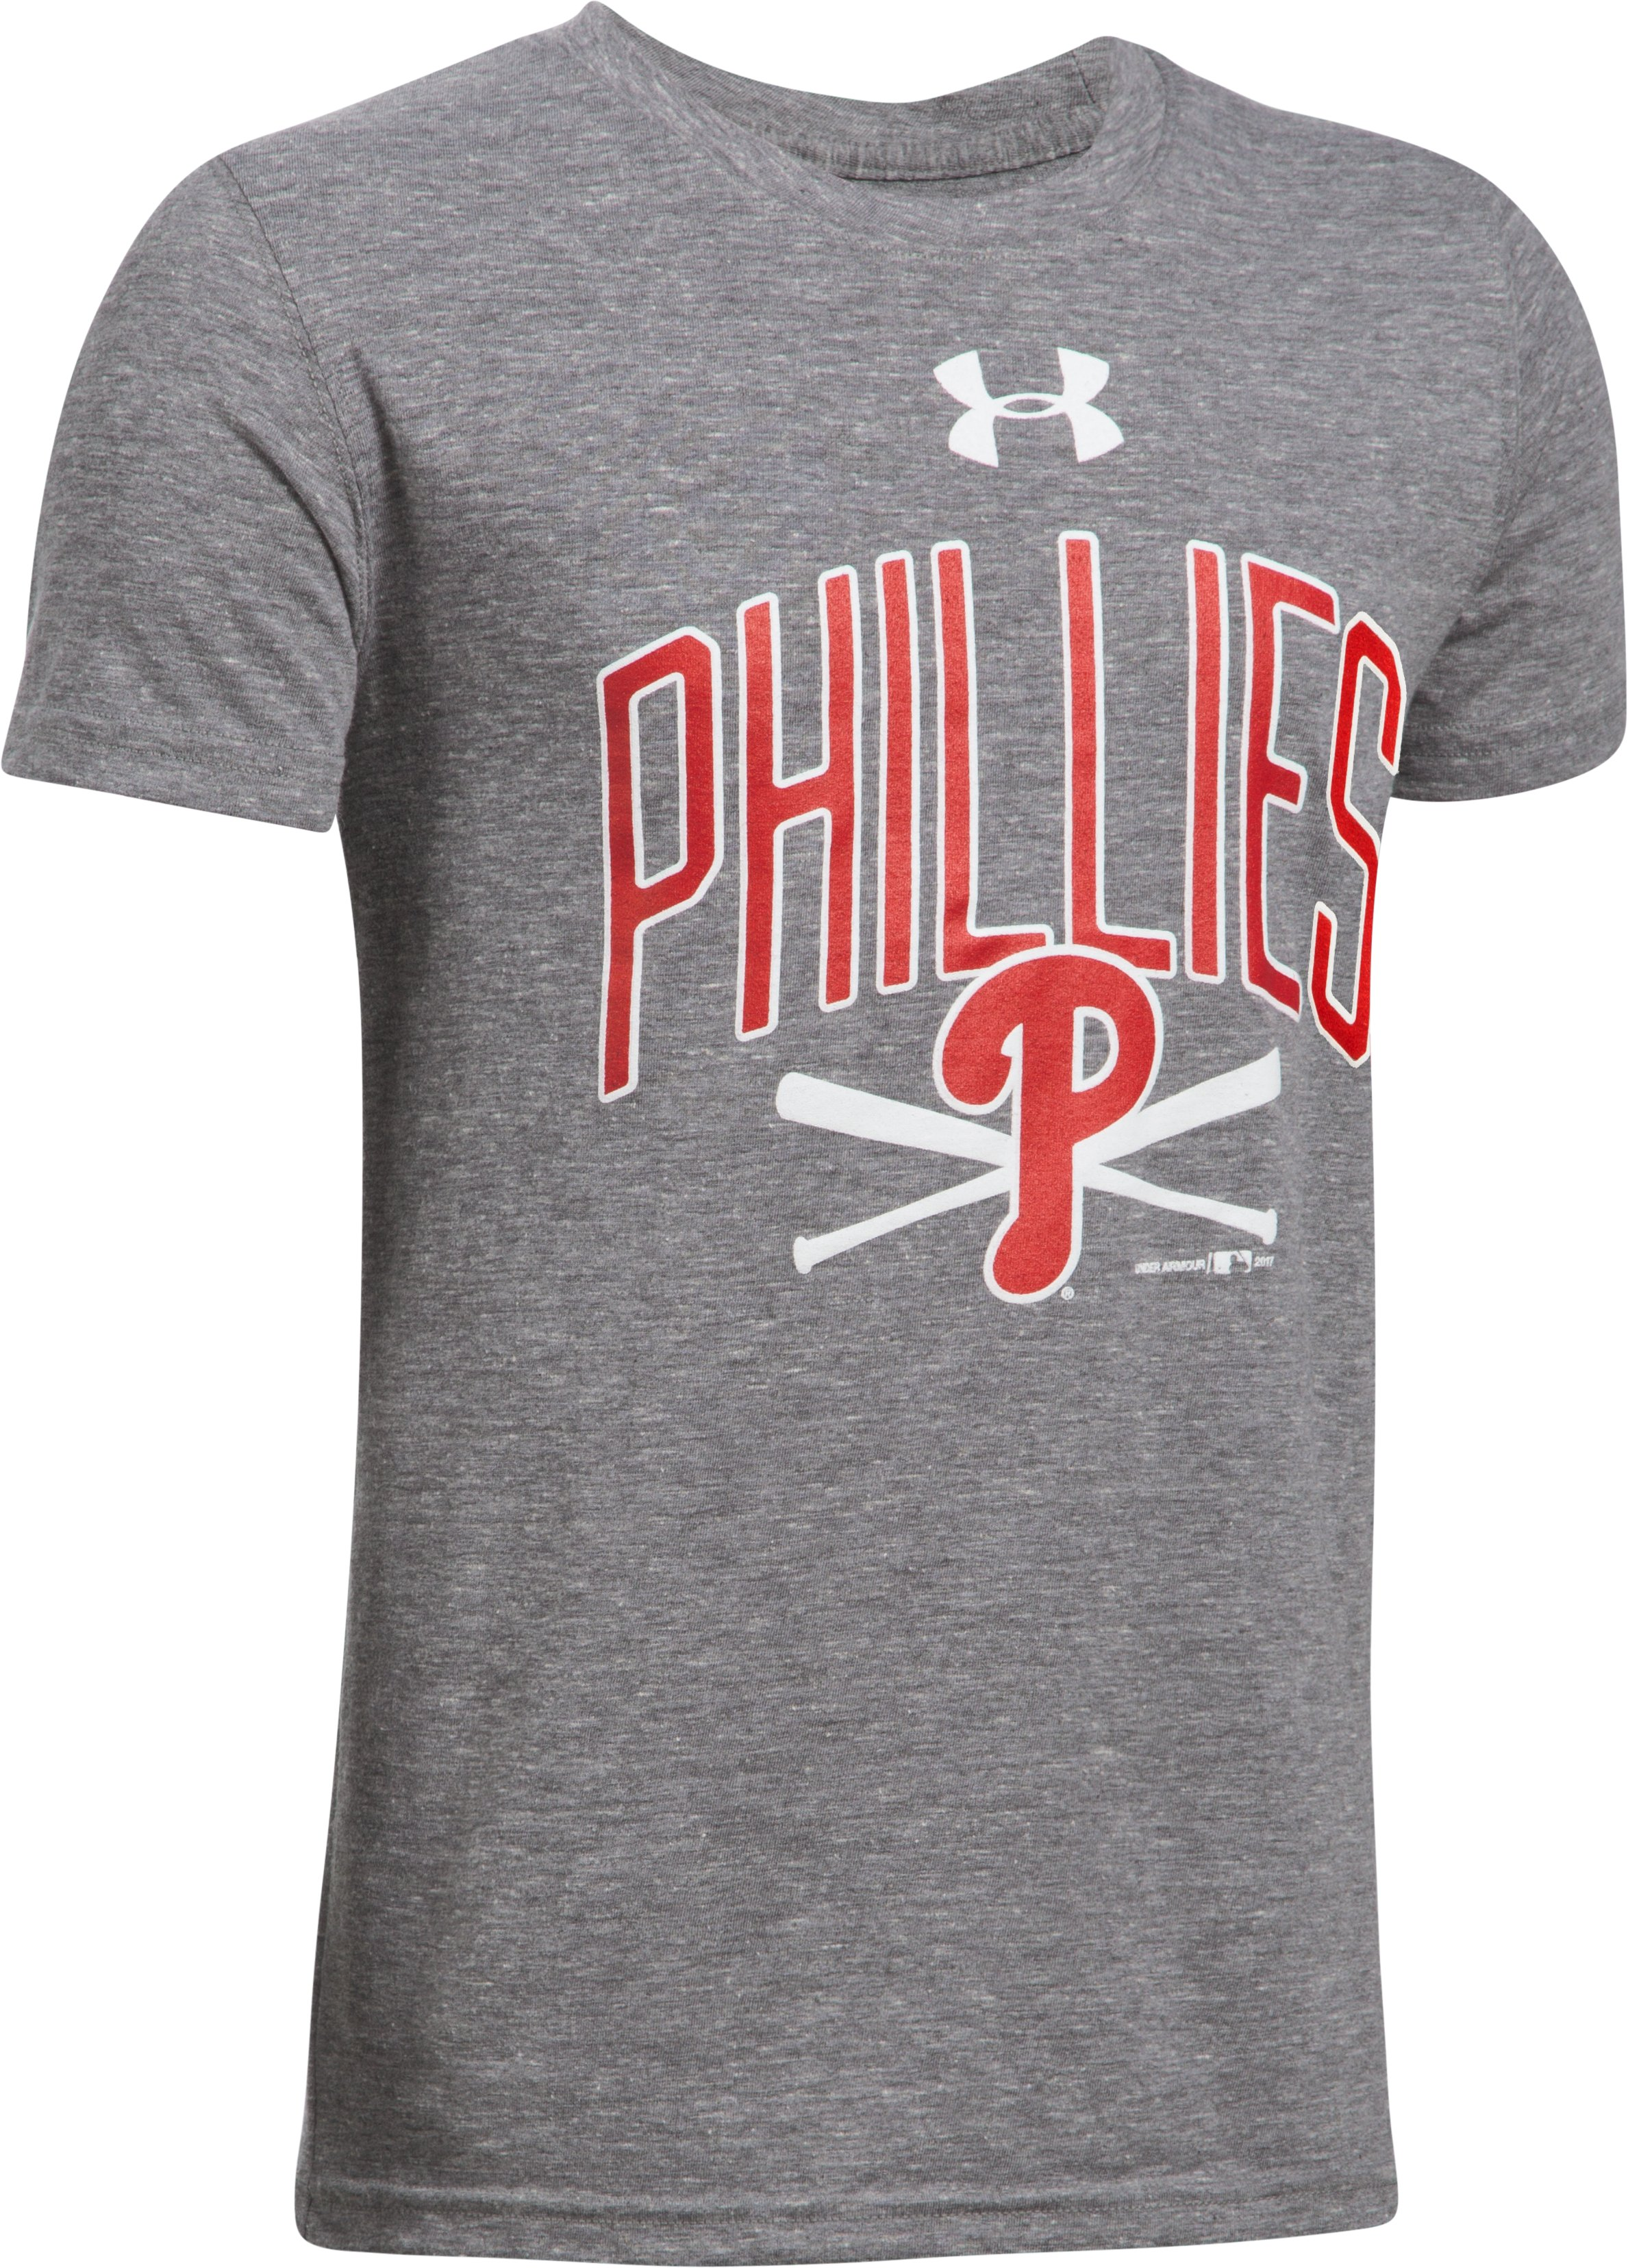 Boys' Philadelphia Phillies Tri-Blend T-Shirt, True Gray Heather, undefined